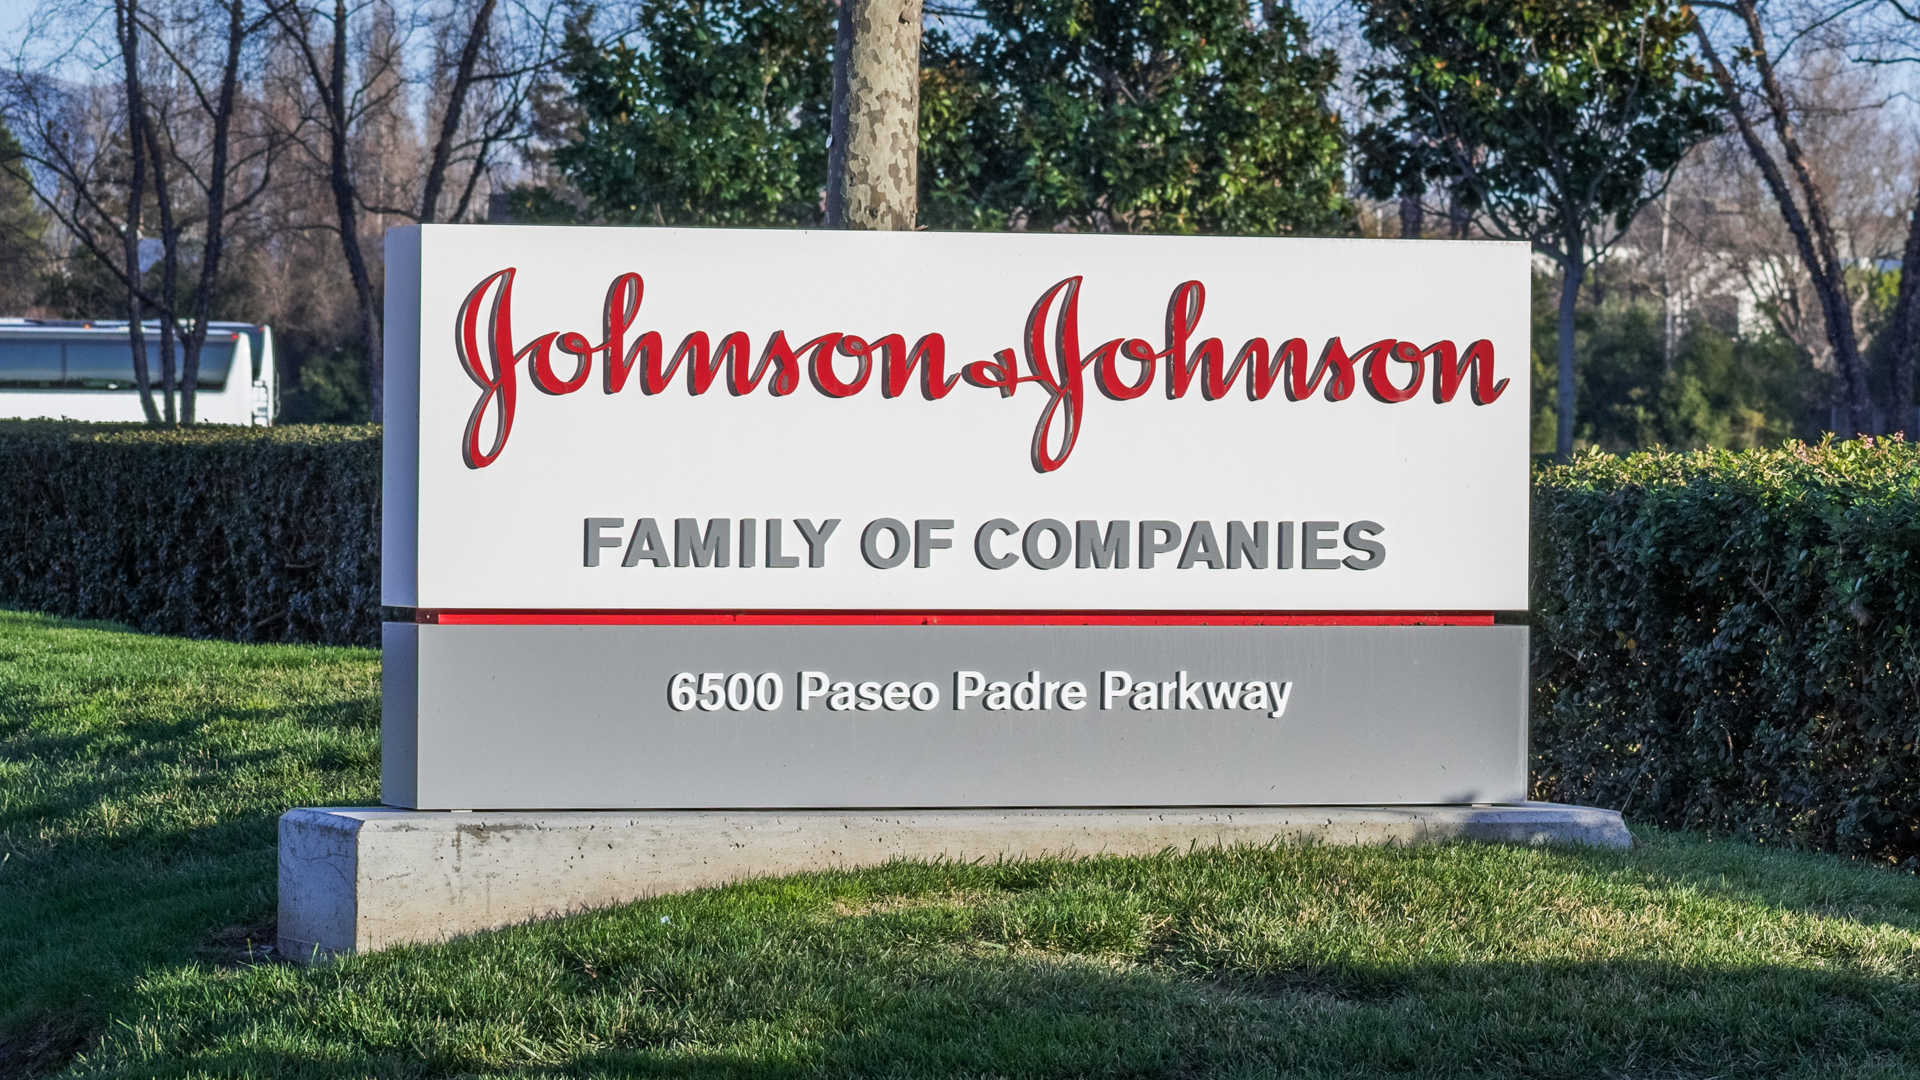 February 3, 2018 Fremont / CA / USA - Johnson & Johnson logo in front of one of their office buildings, Fremont, East San Francisco bay area, California.